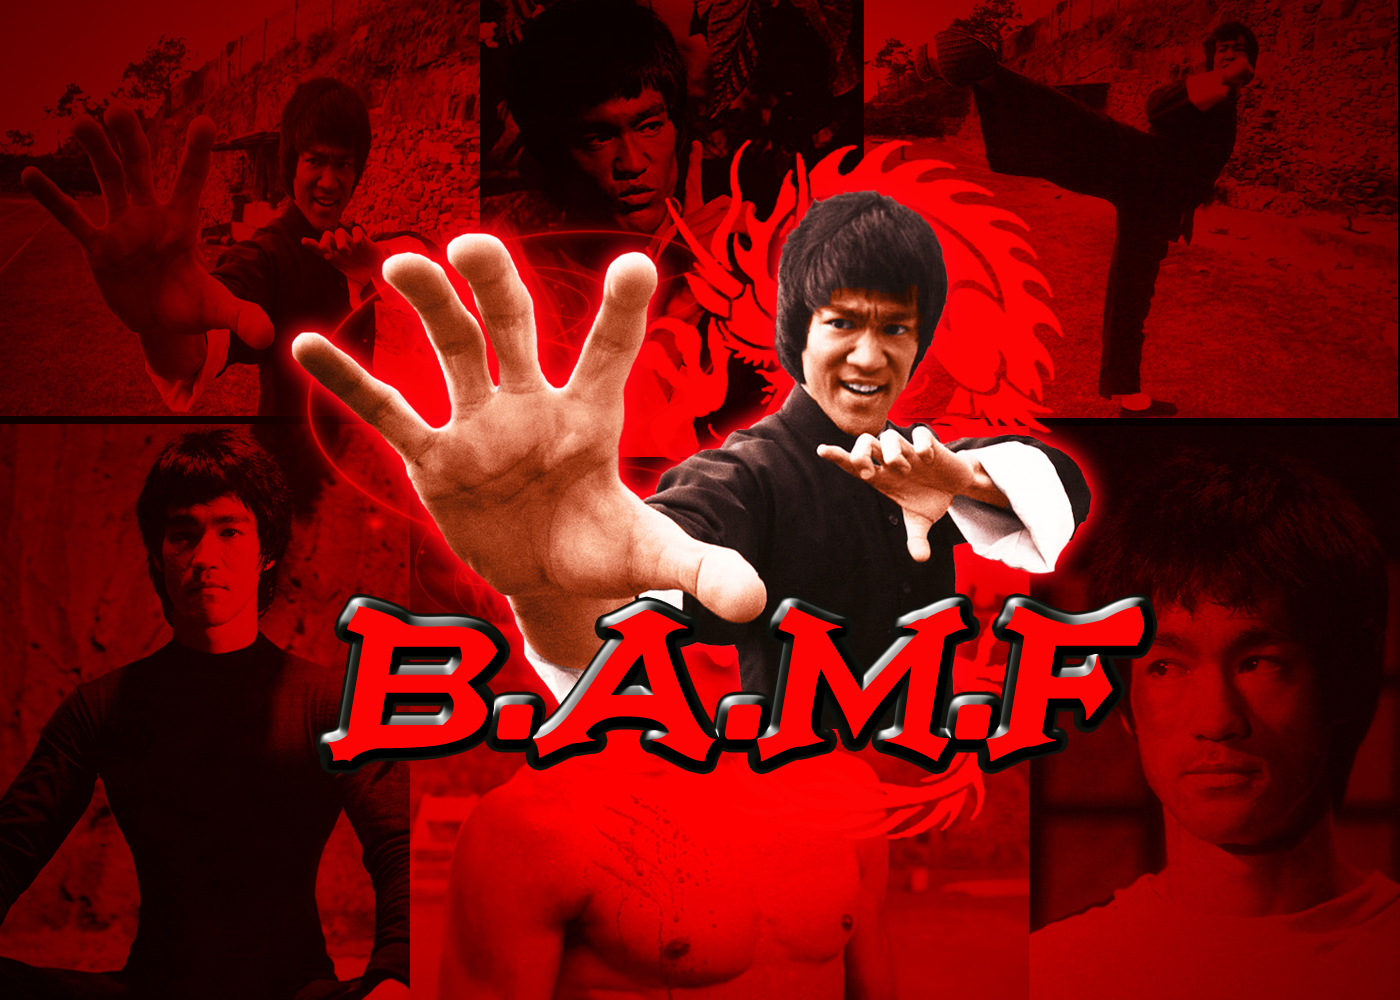 Bruce Lee Wallpaper Enter The Dragon Bamf bruce lee wallpaper by